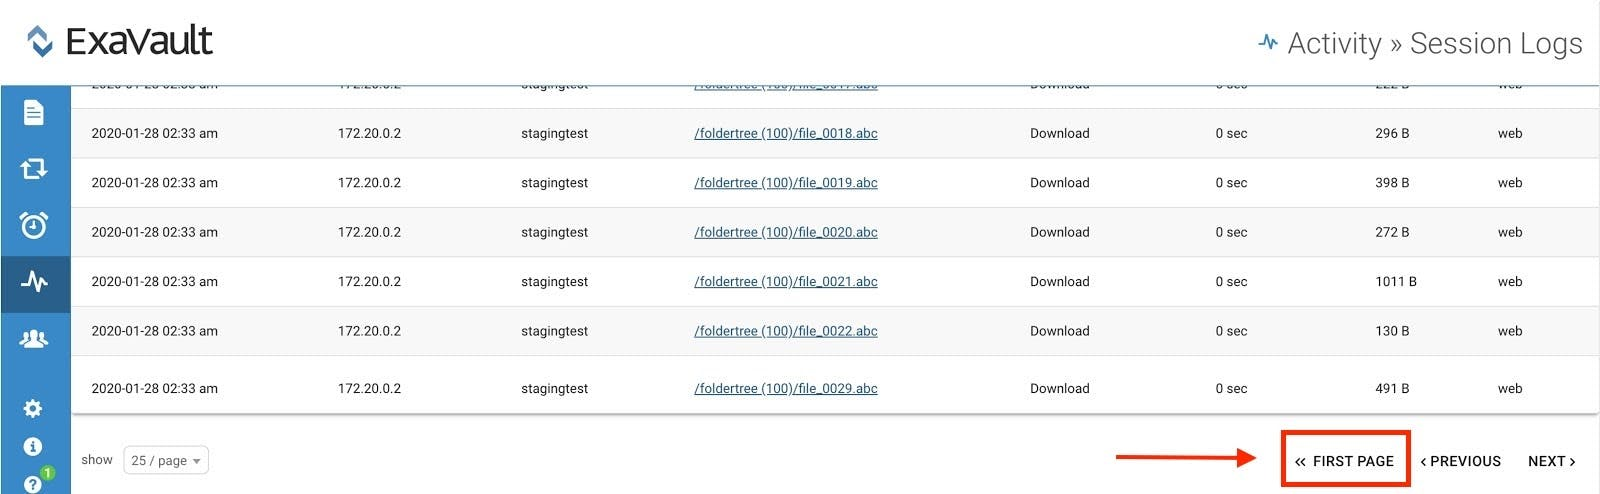 Link directly to first page in the activity logs.